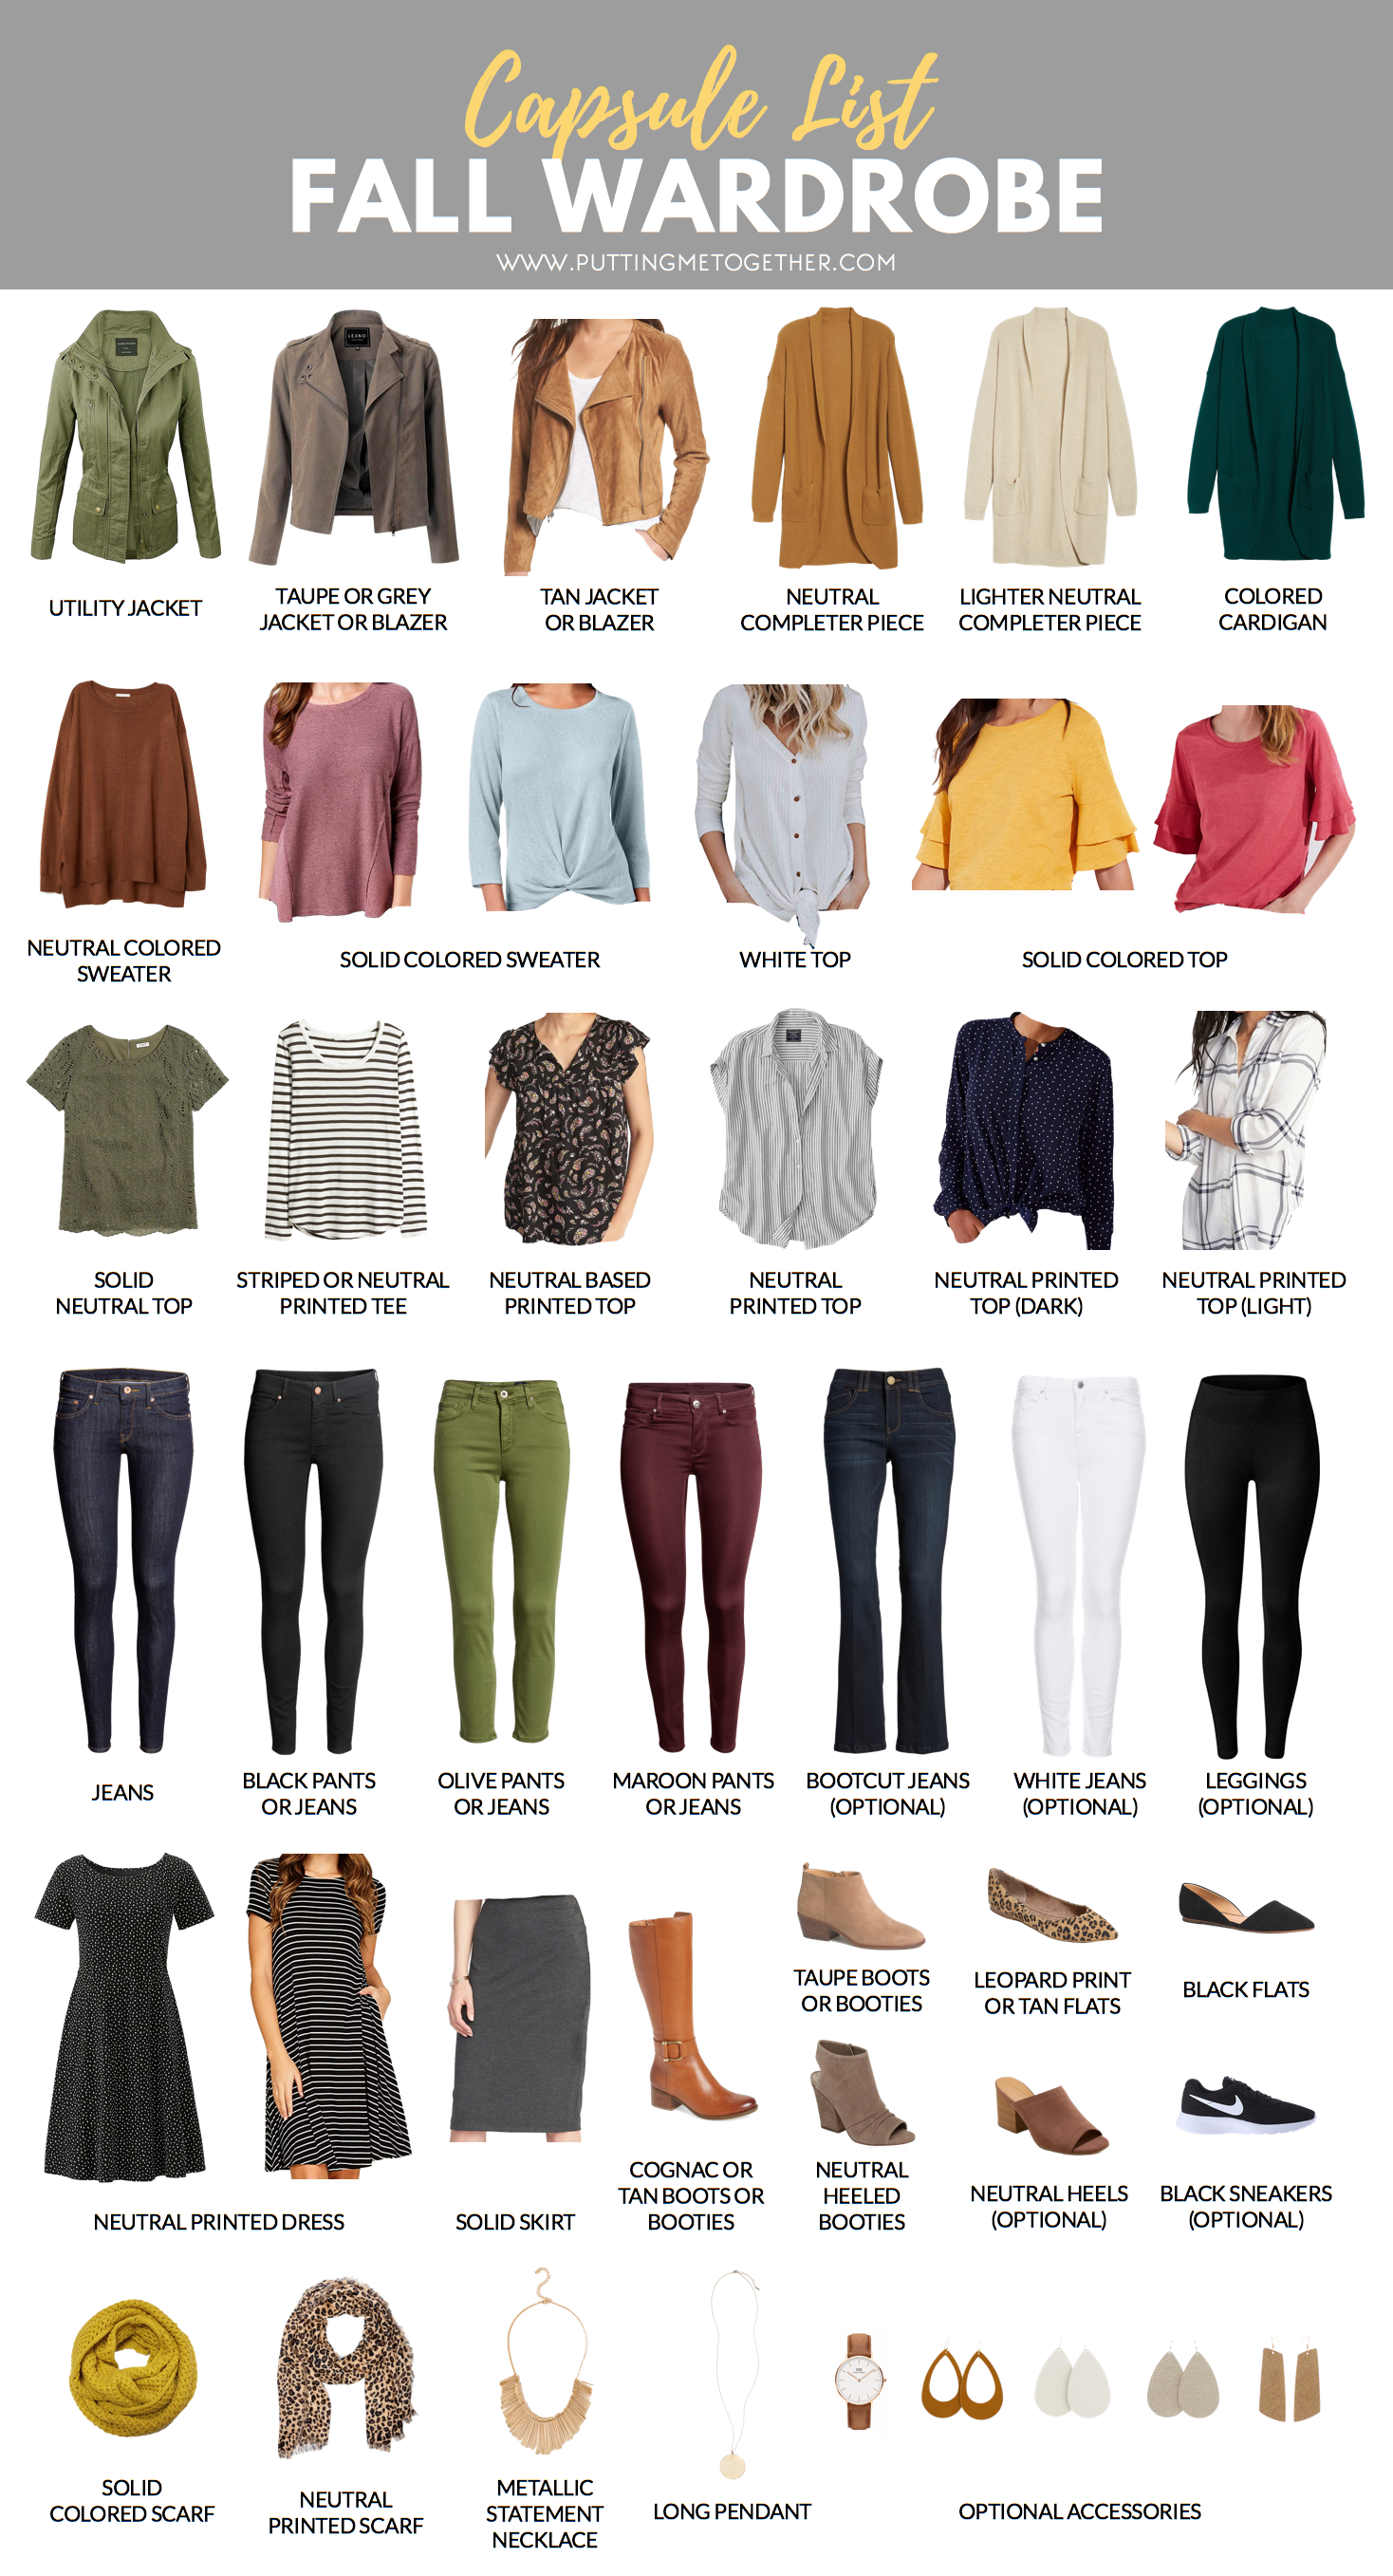 Fall Capsule Wardrobe for the PMT Fall 2018 Challenge!